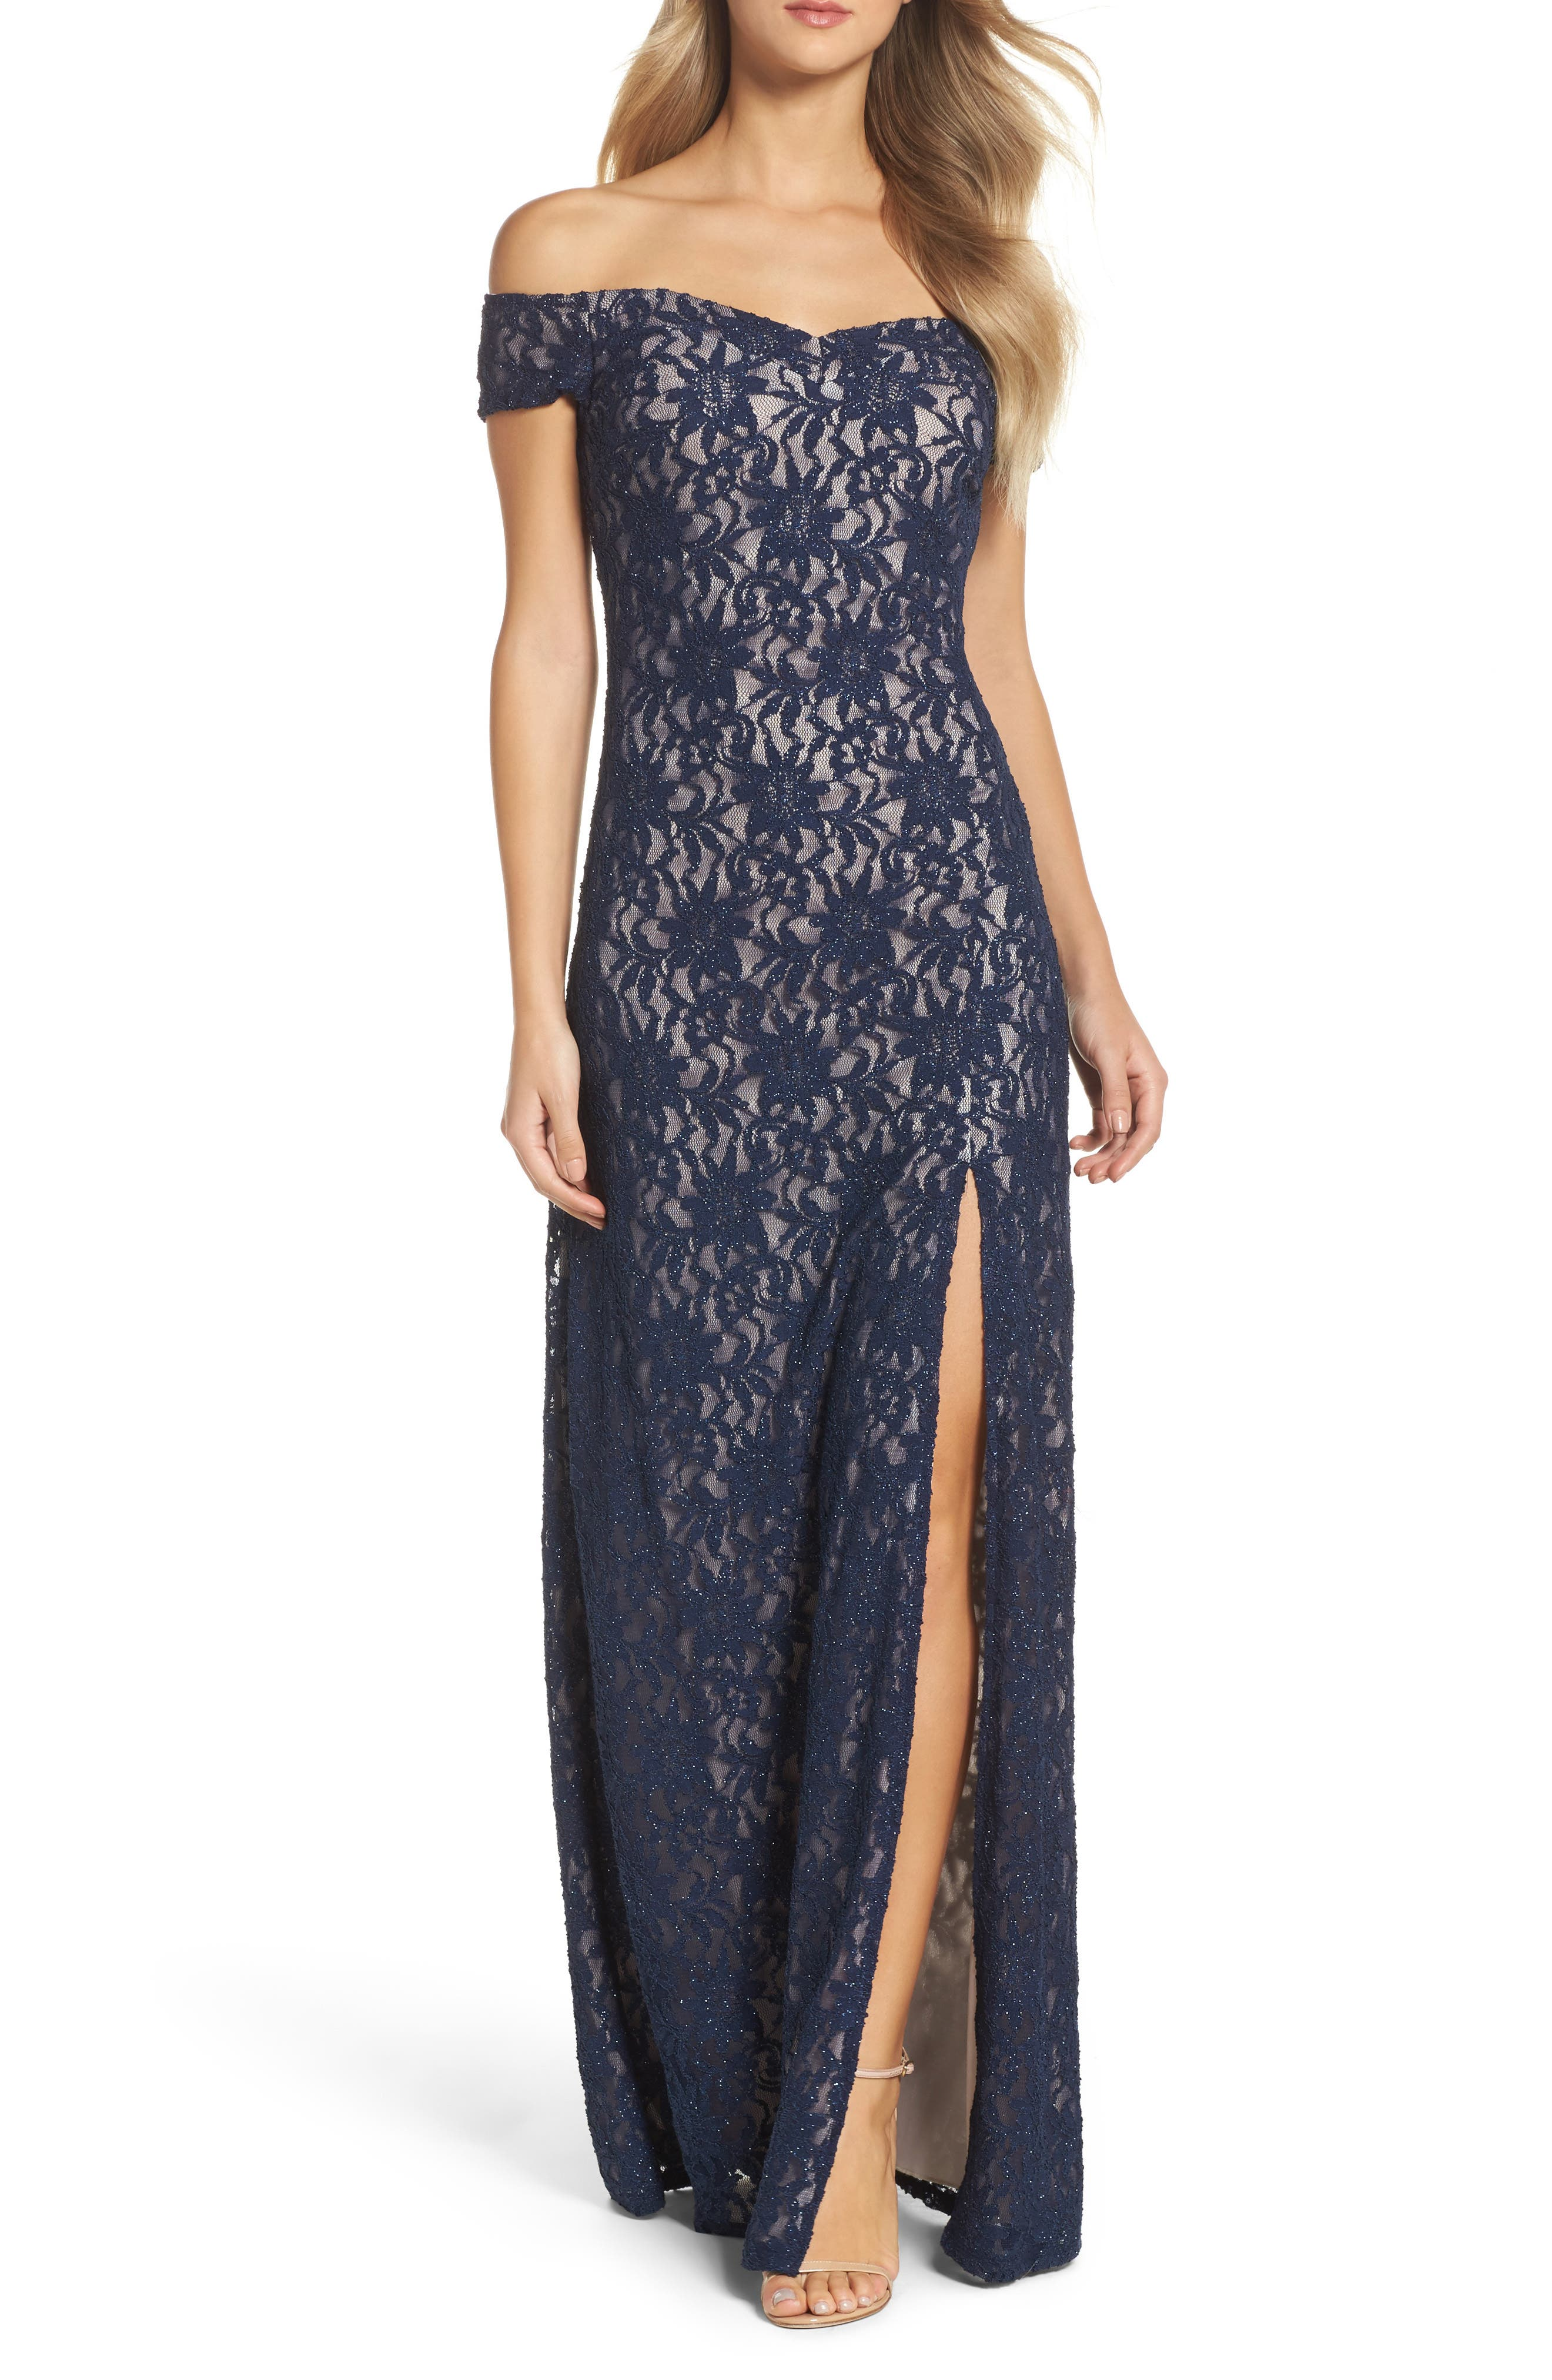 Main Image - Sequin Hearts Off the Shoulder Glitter Lace Gown